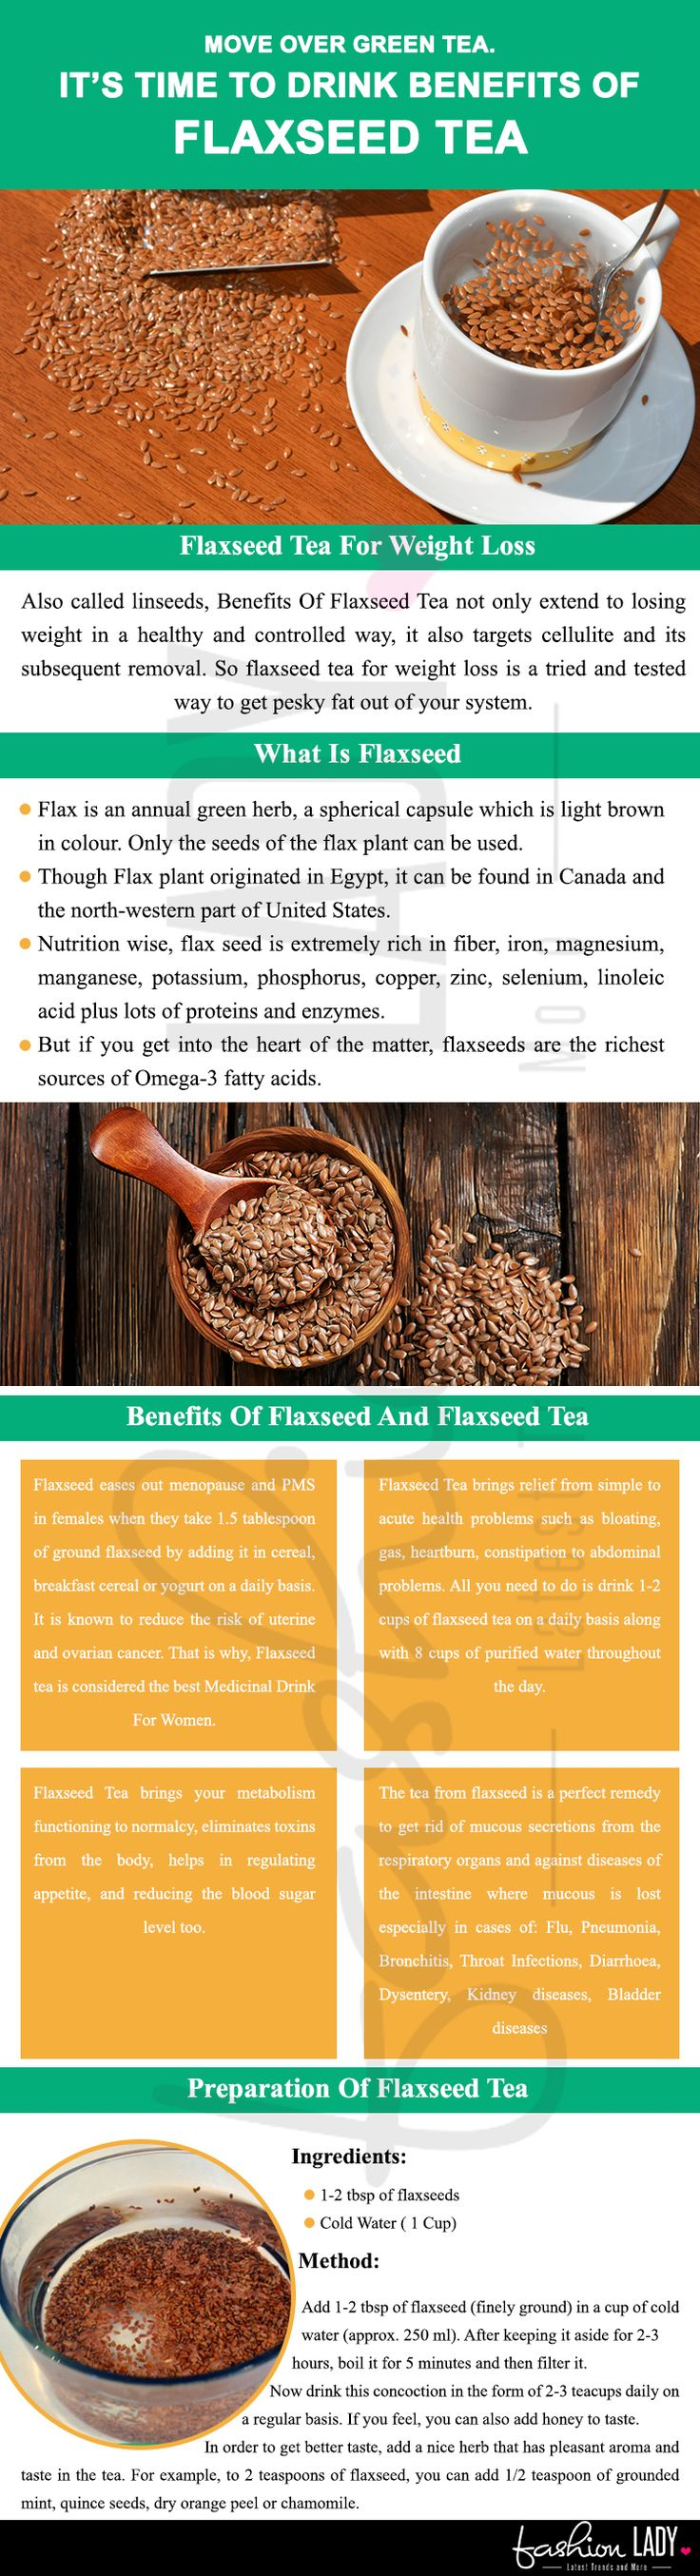 Move Over Green Tea. It's Time To Drink Benefits Of Flaxseed Tea